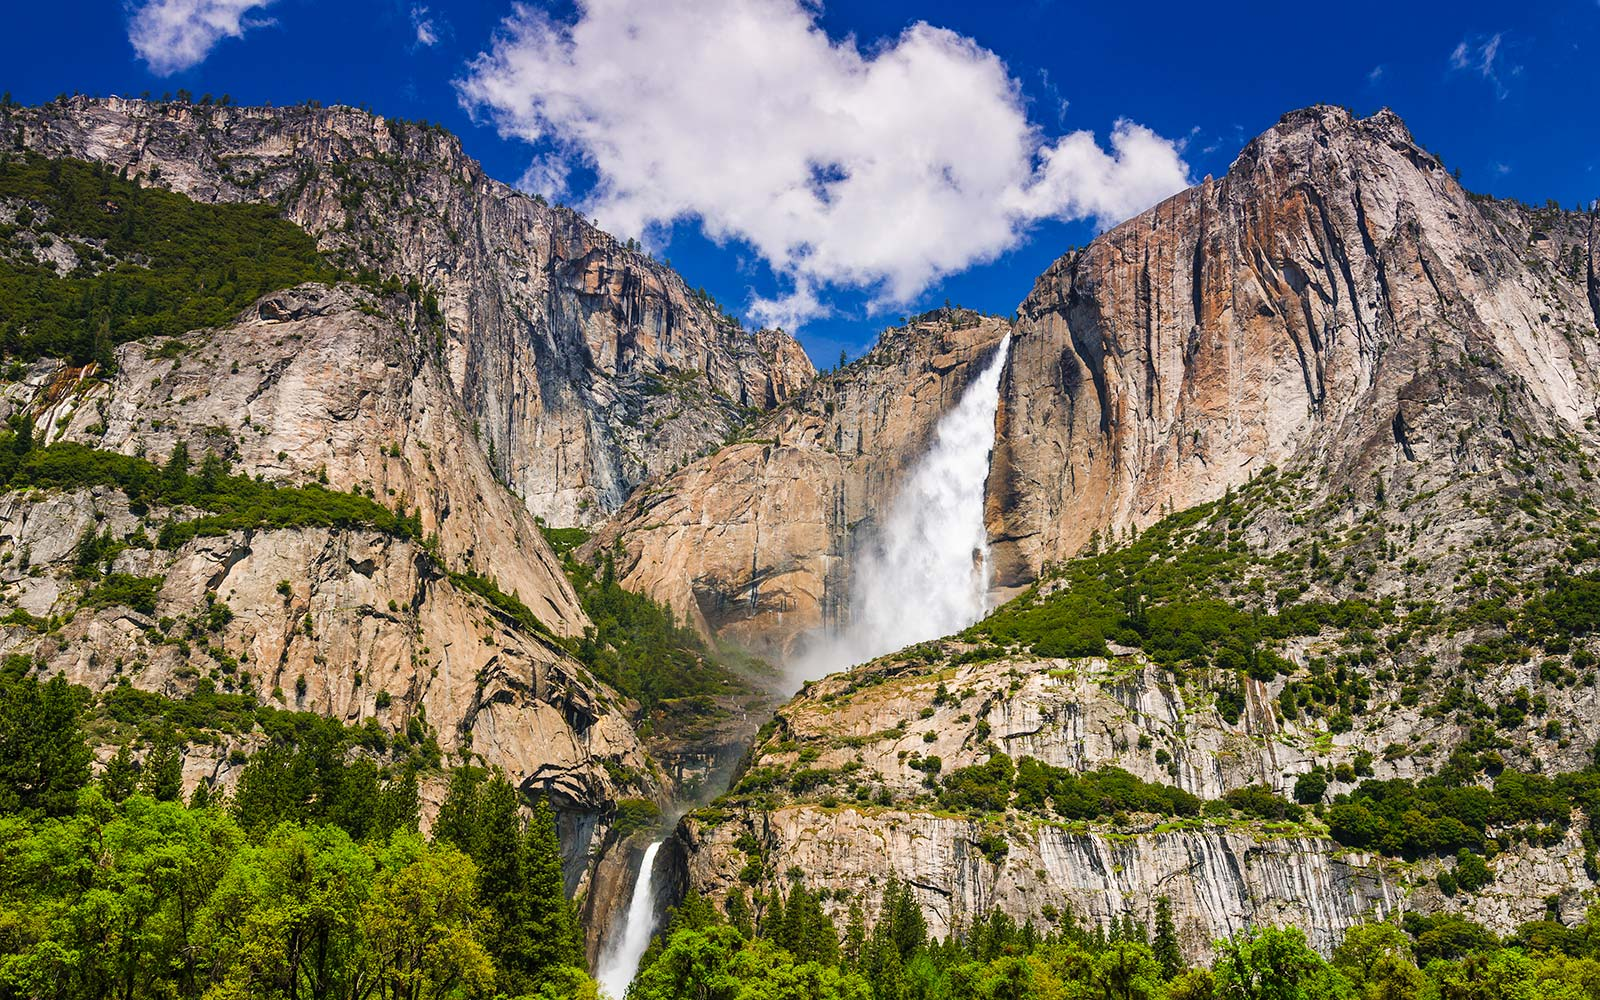 Incredible new waterfalls have appeared at Yosemite, thanks to heavy snowfall